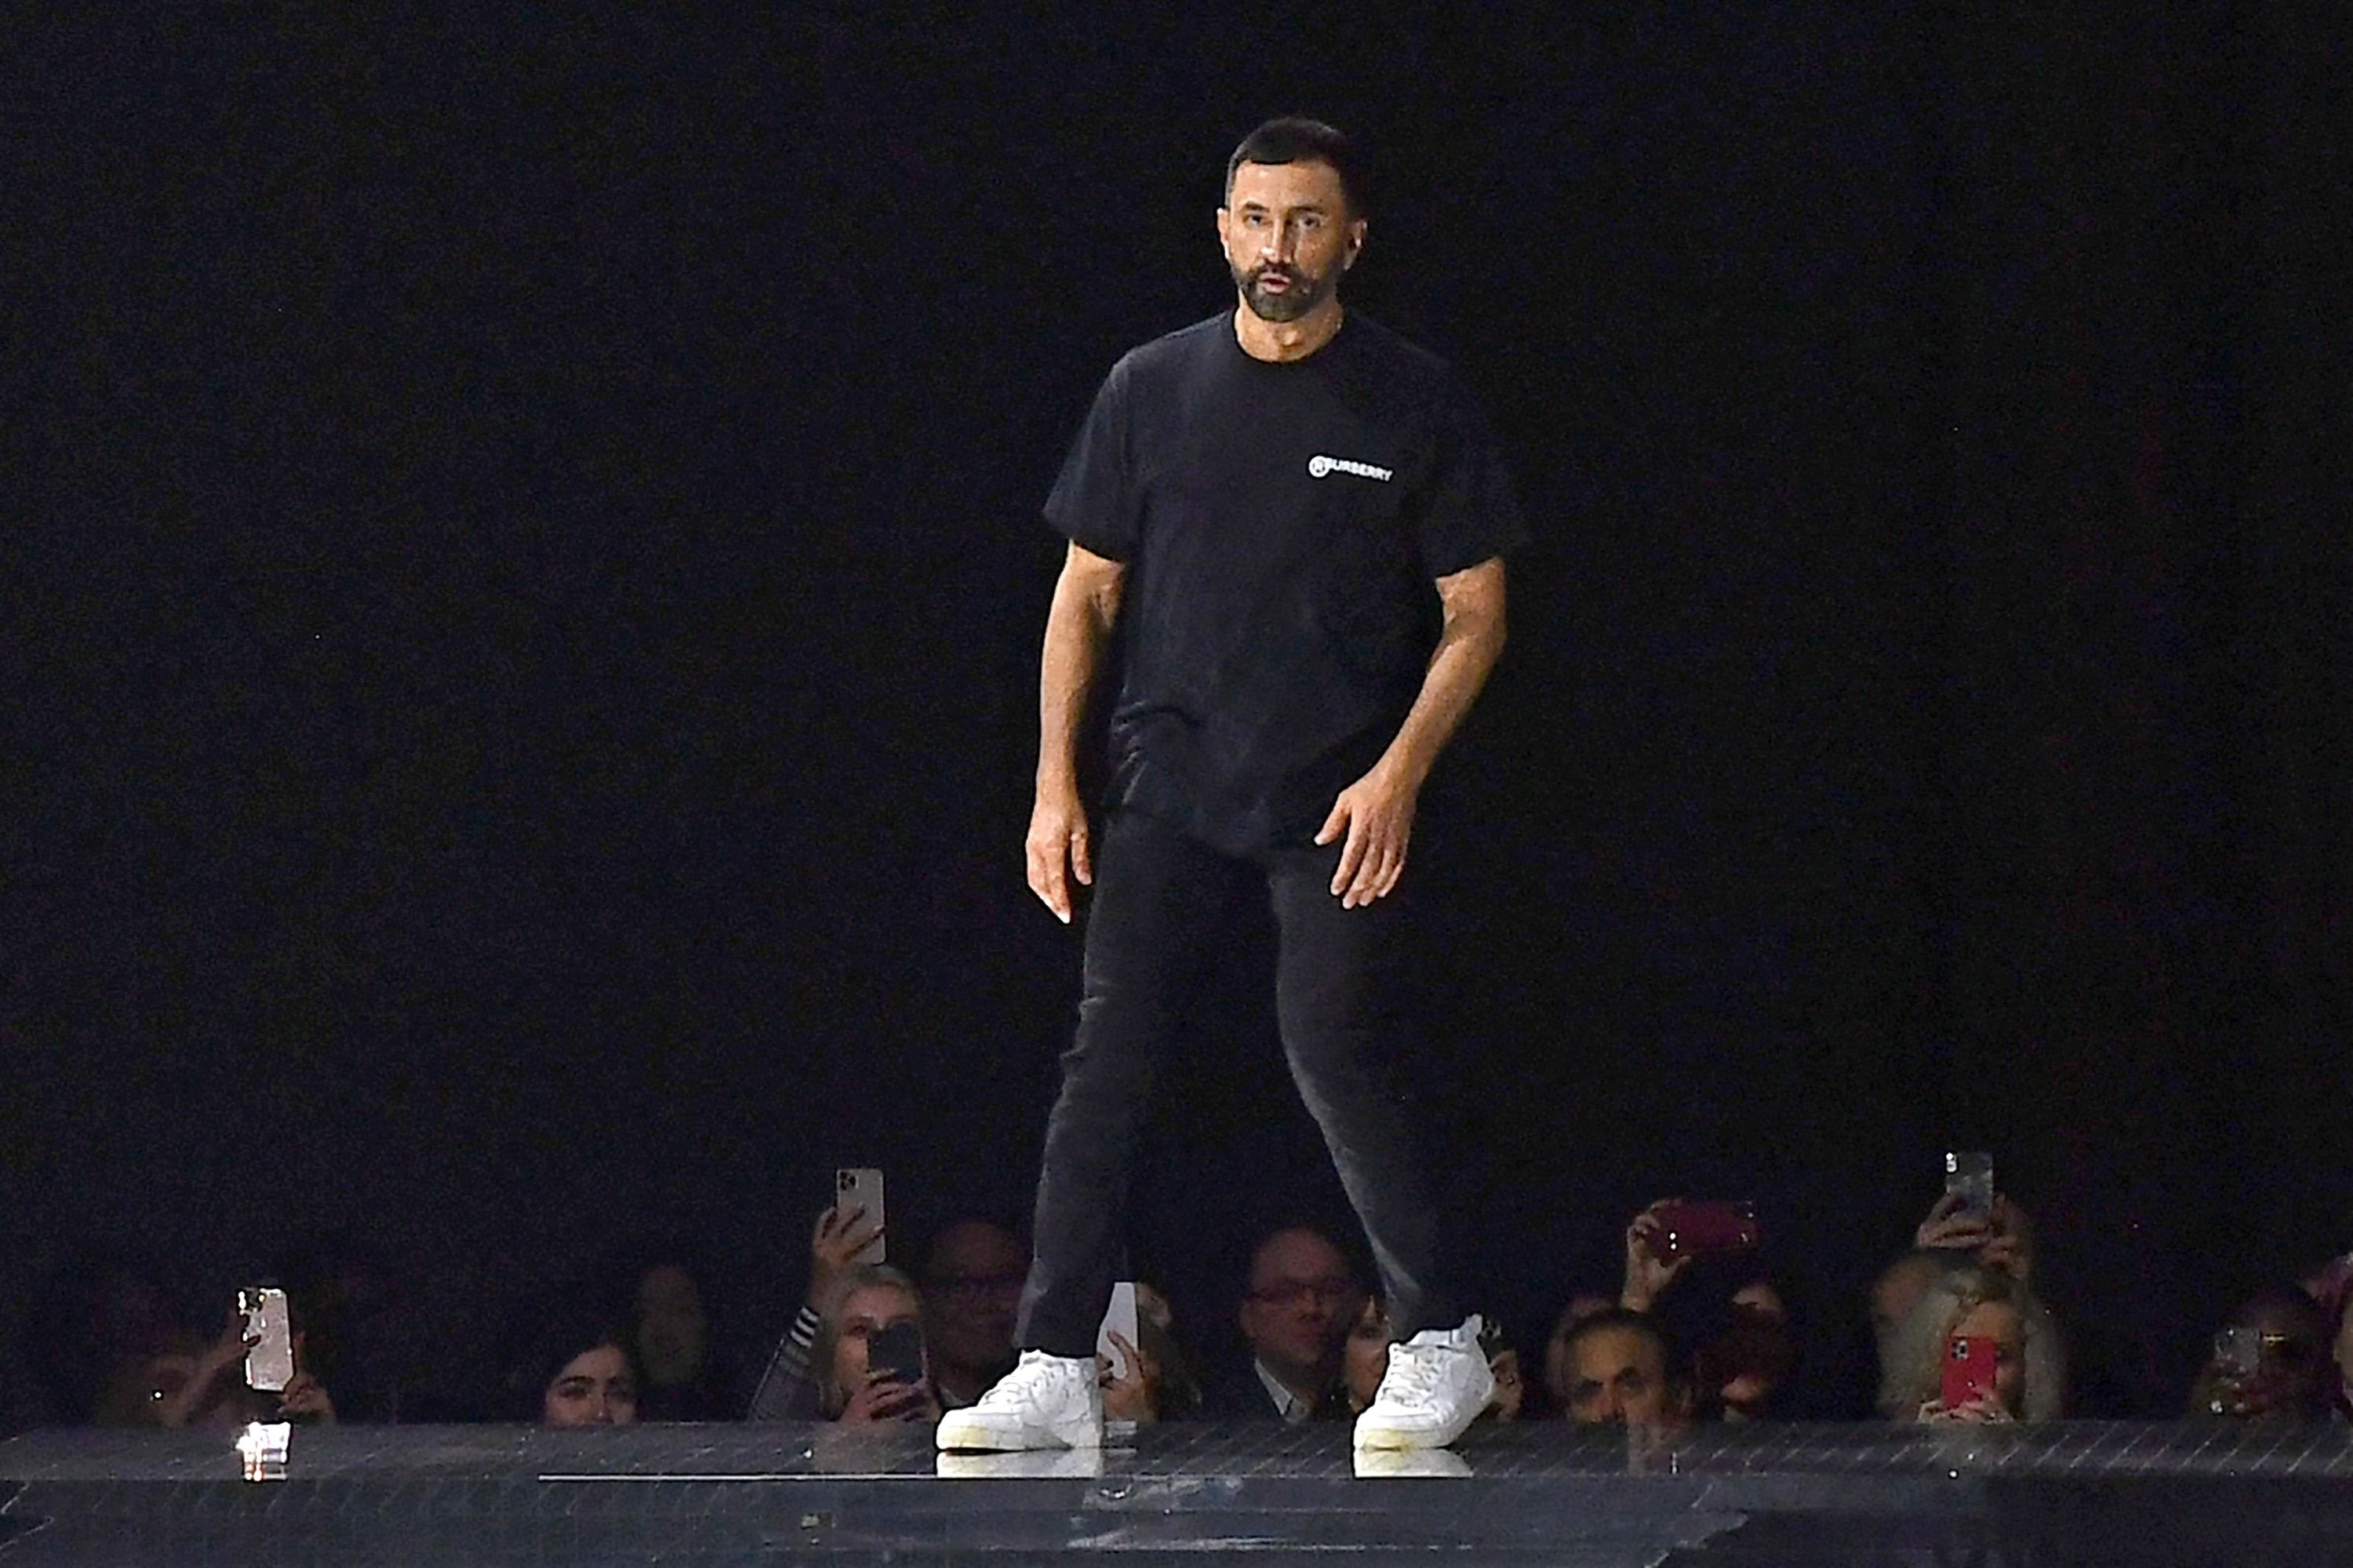 In this file photo taken on February 17, 2020 Chief Creative Officer for Burberry, Riccardo Tisci acknowledges the applause from the audience after the Burberry 2020 Autumn / Winter collection catwalk show during London Fashion Week in London. (AFP Photo)